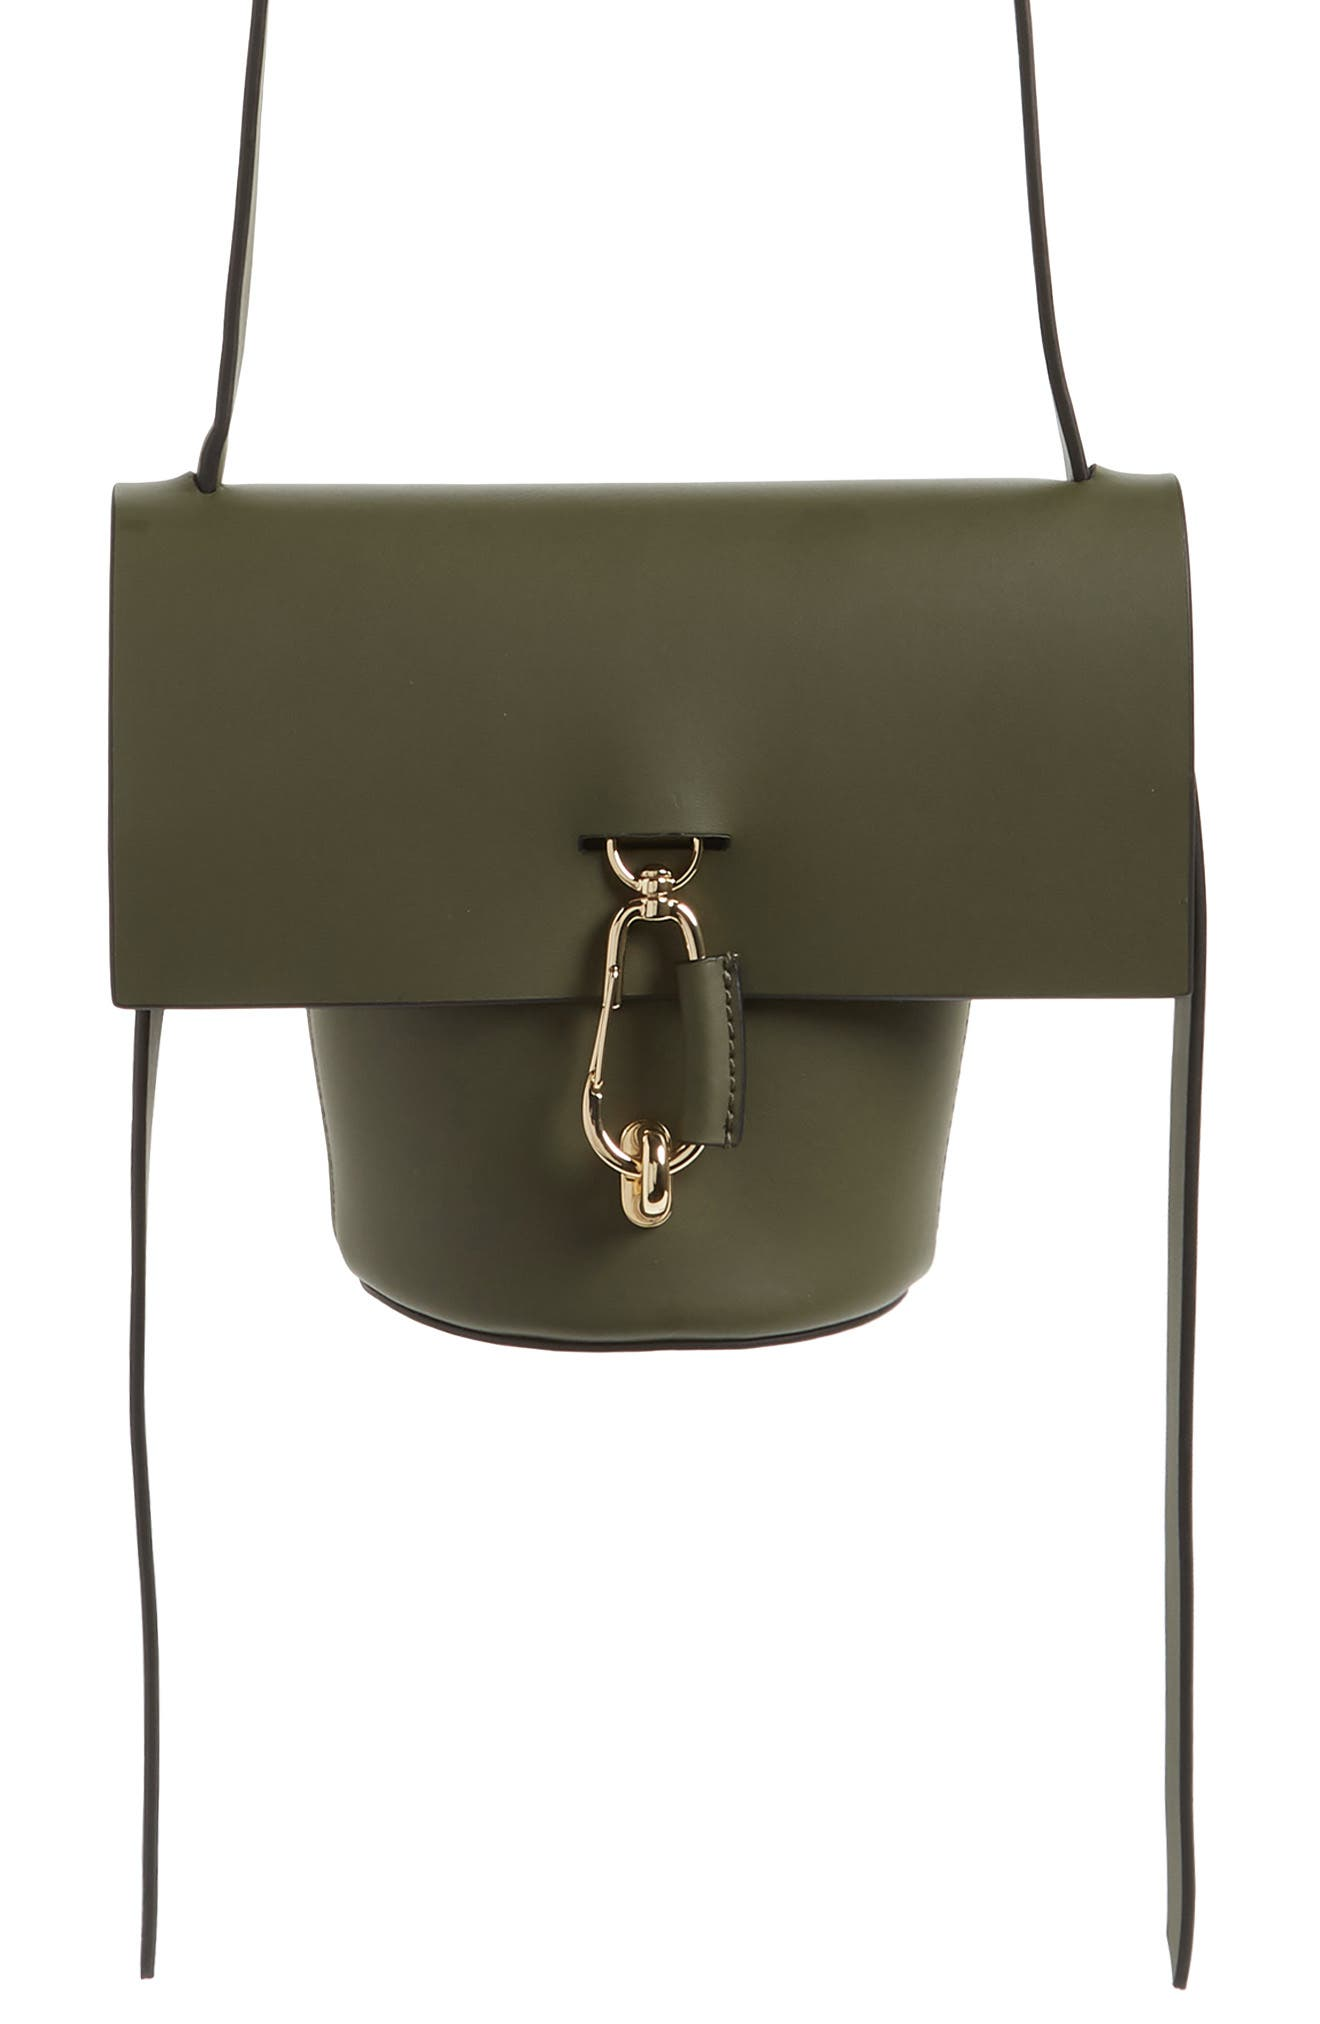 ZAC Zac Posen Mini Belay Leather Crossbody Bucket Bag